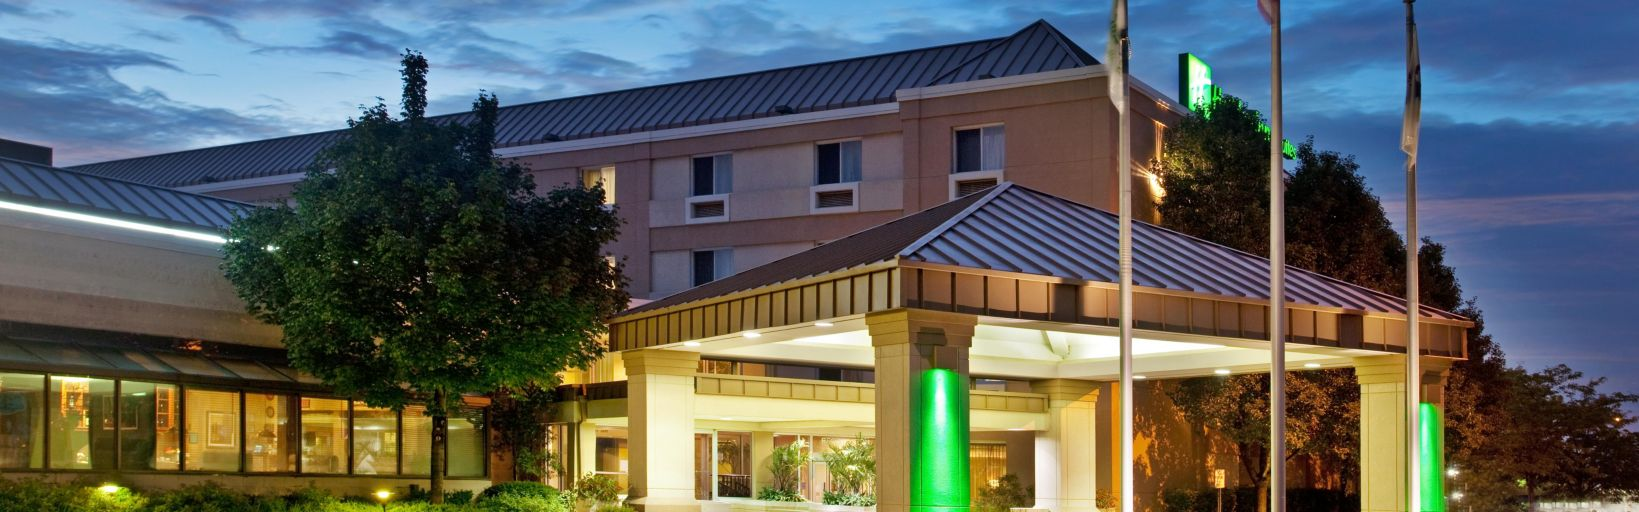 The Welcoming Glow Of Holiday Inn Suites Carol Stream Hotel Exterior